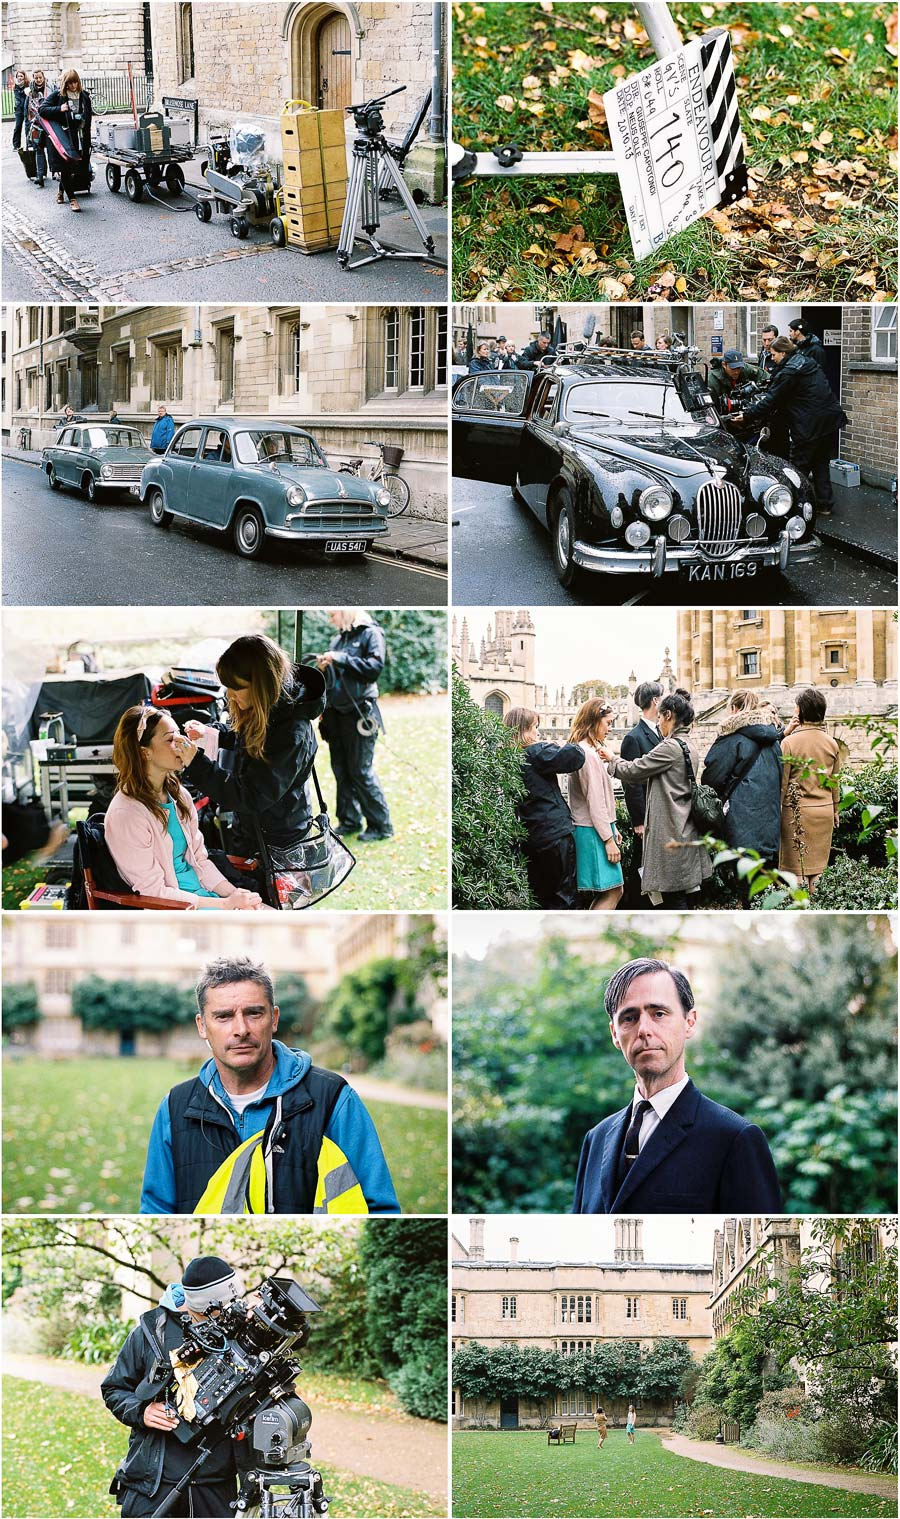 behind the scenes of Endeavour series 2 filming in oxford